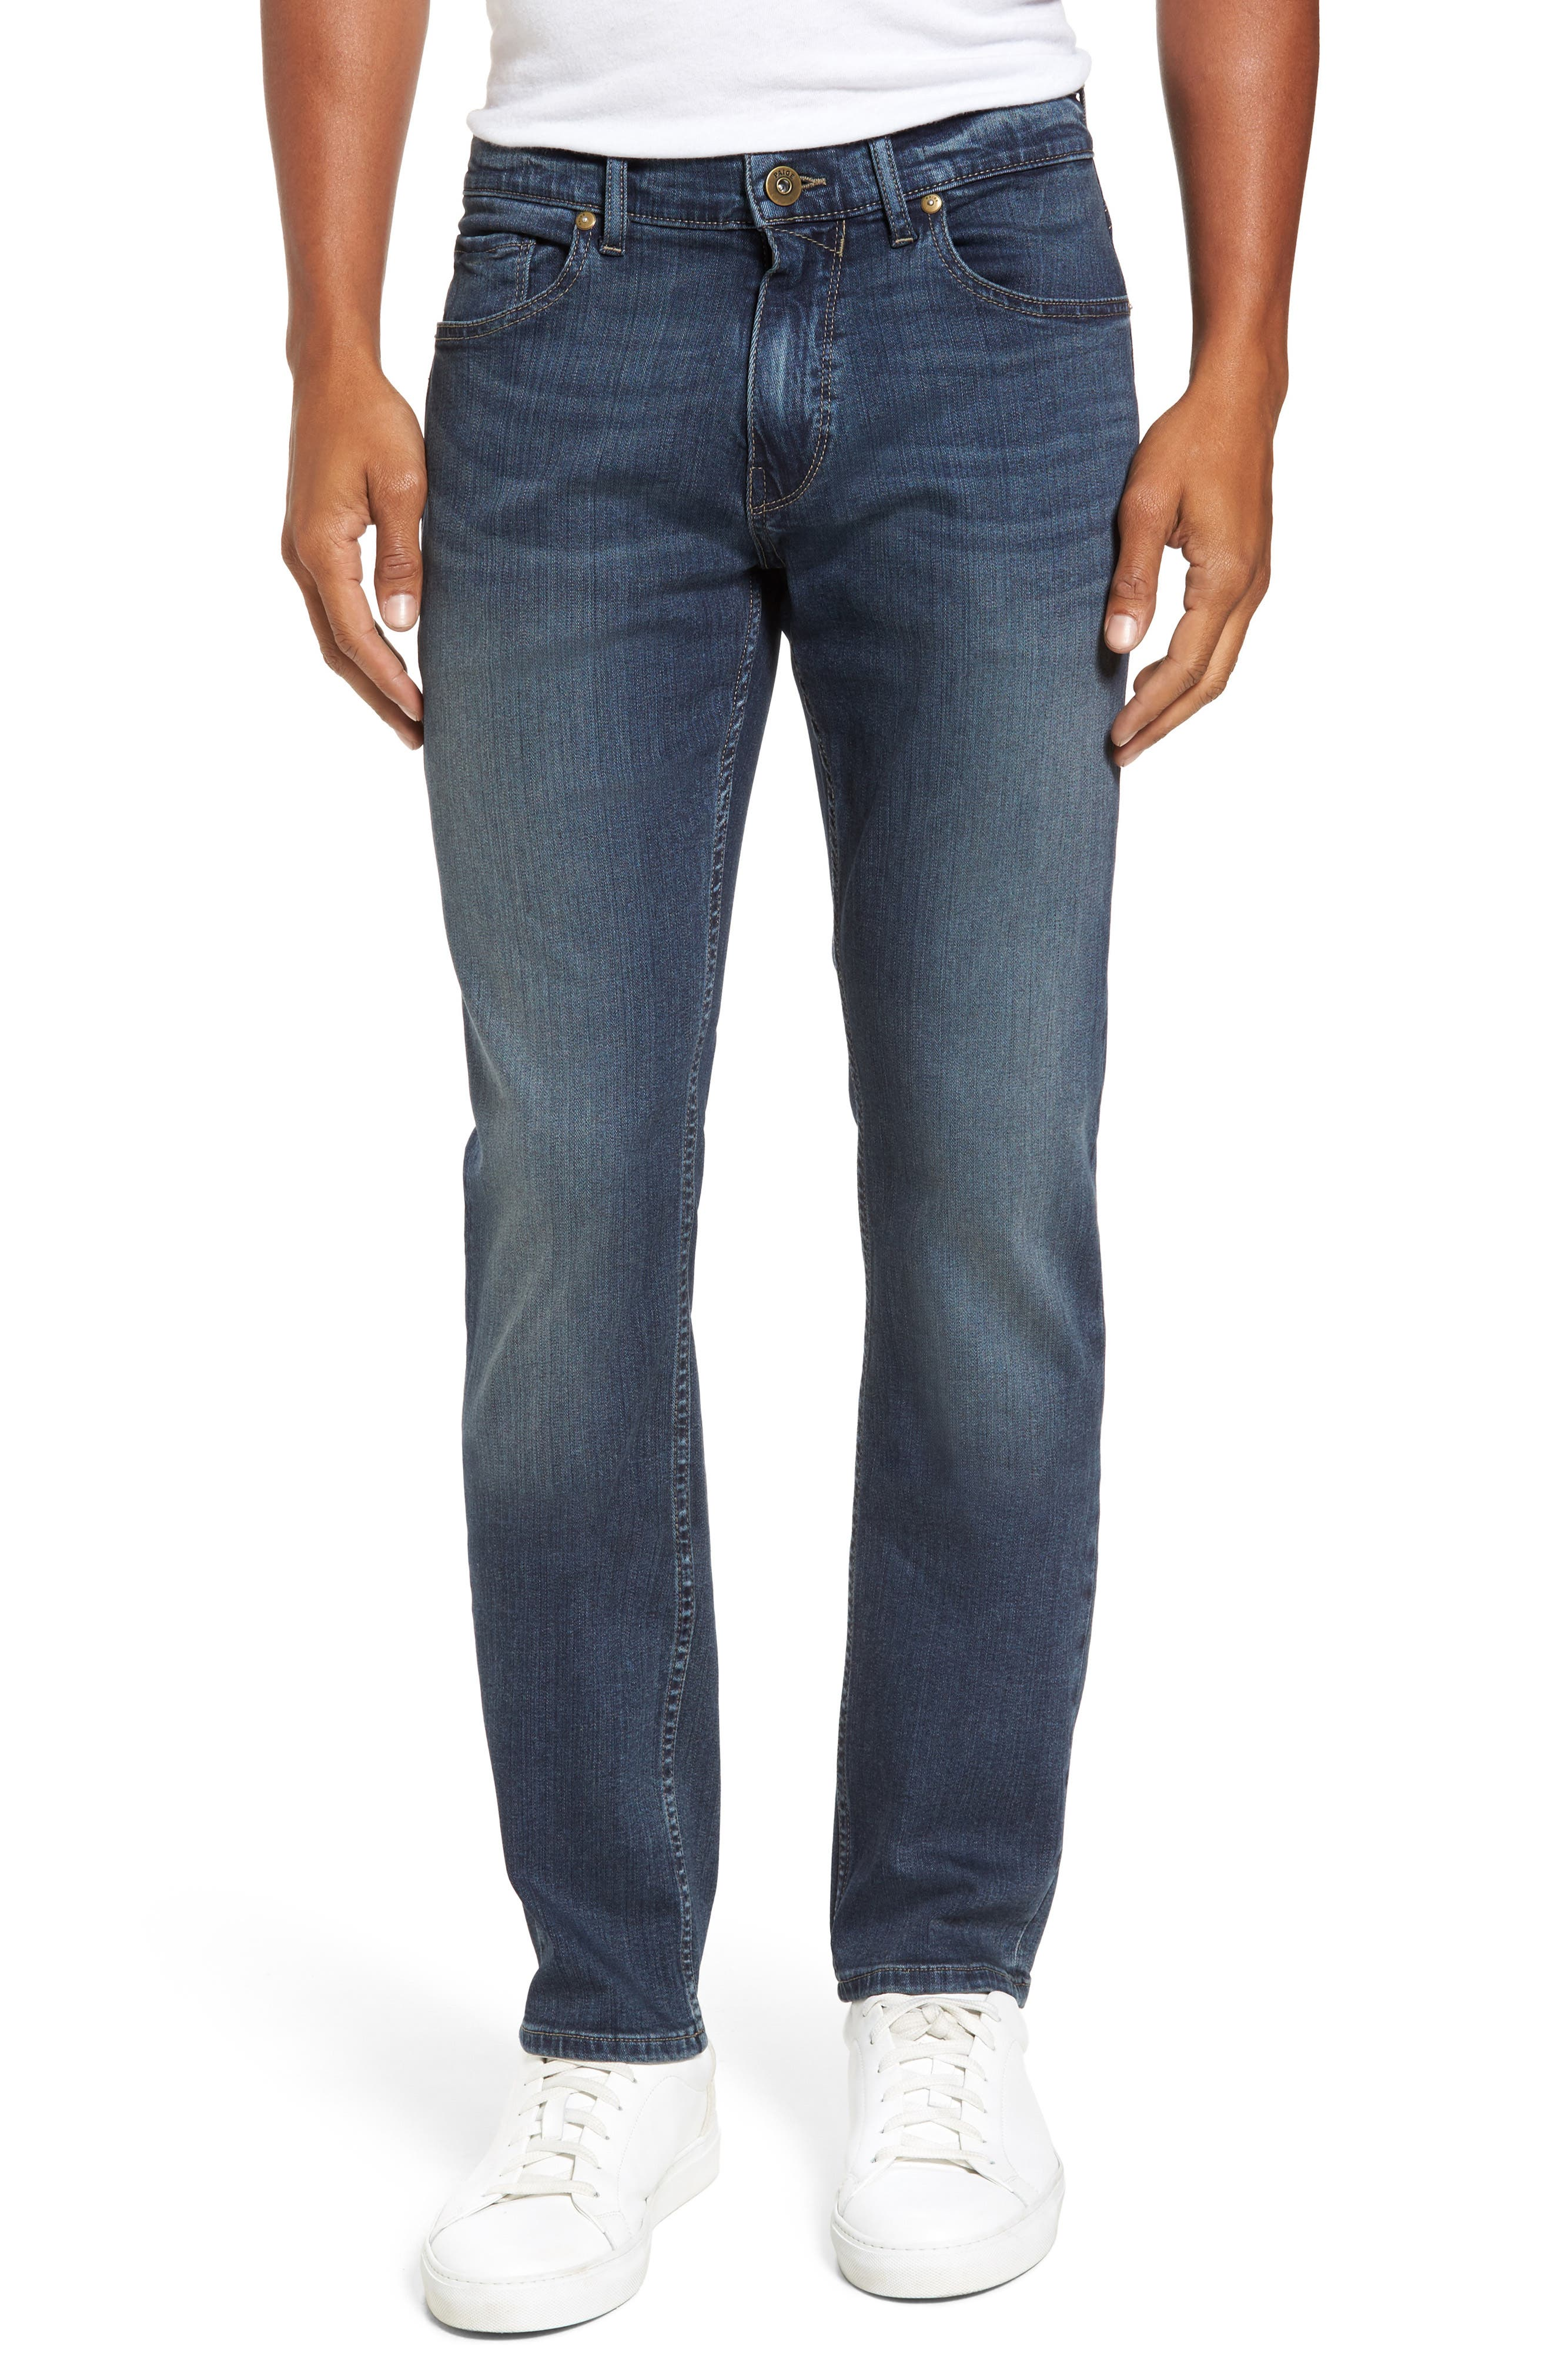 Transcend - Federal Slim Straight Leg Jeans,                             Main thumbnail 1, color,                             Briggs